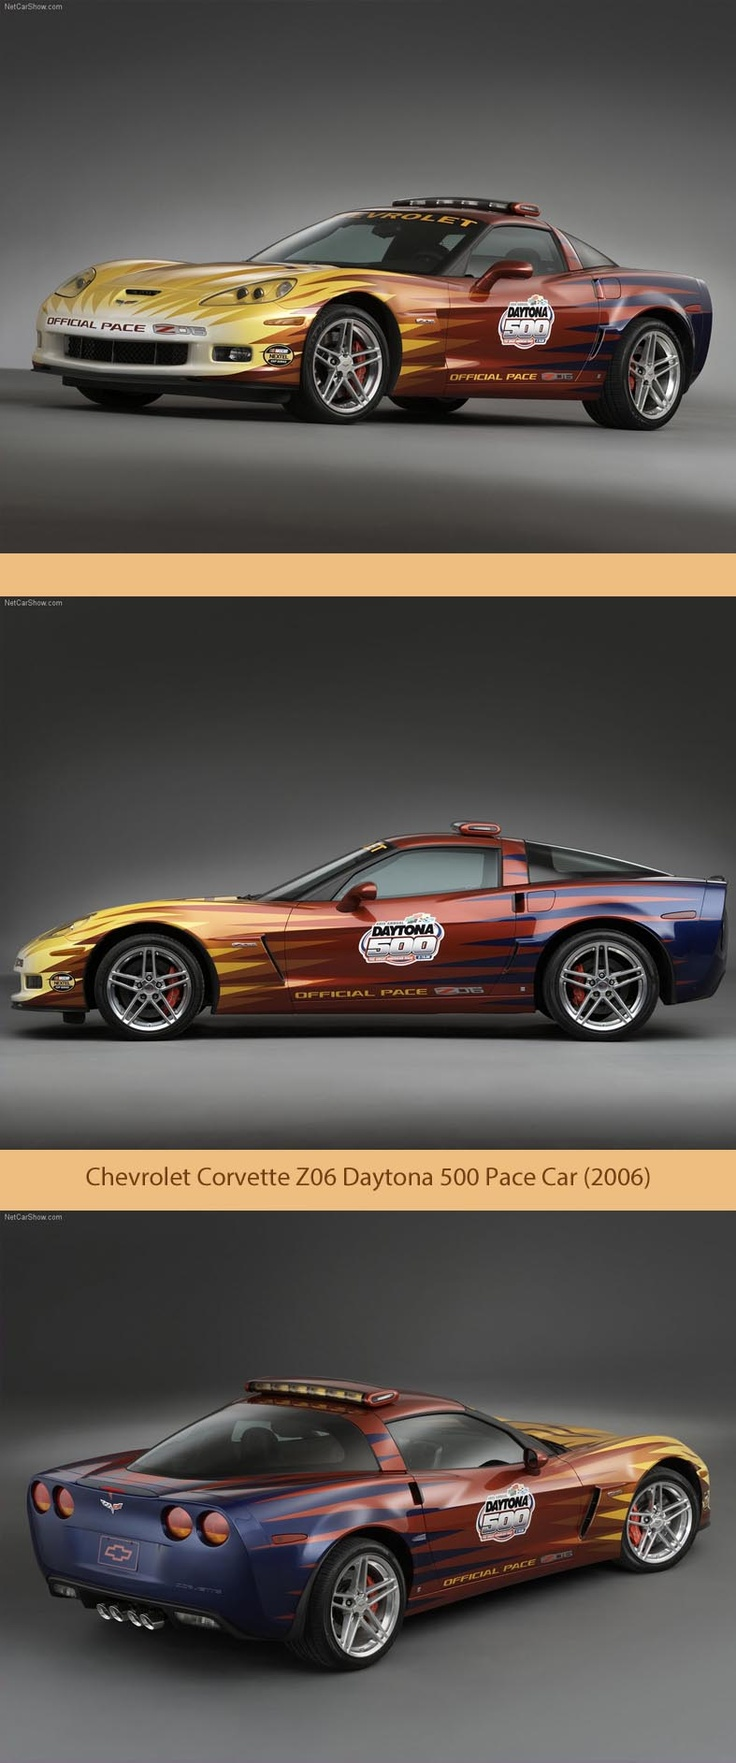 2018 Chevrolet Corvette Z06 Daytona 500 Pace Car photo - 3